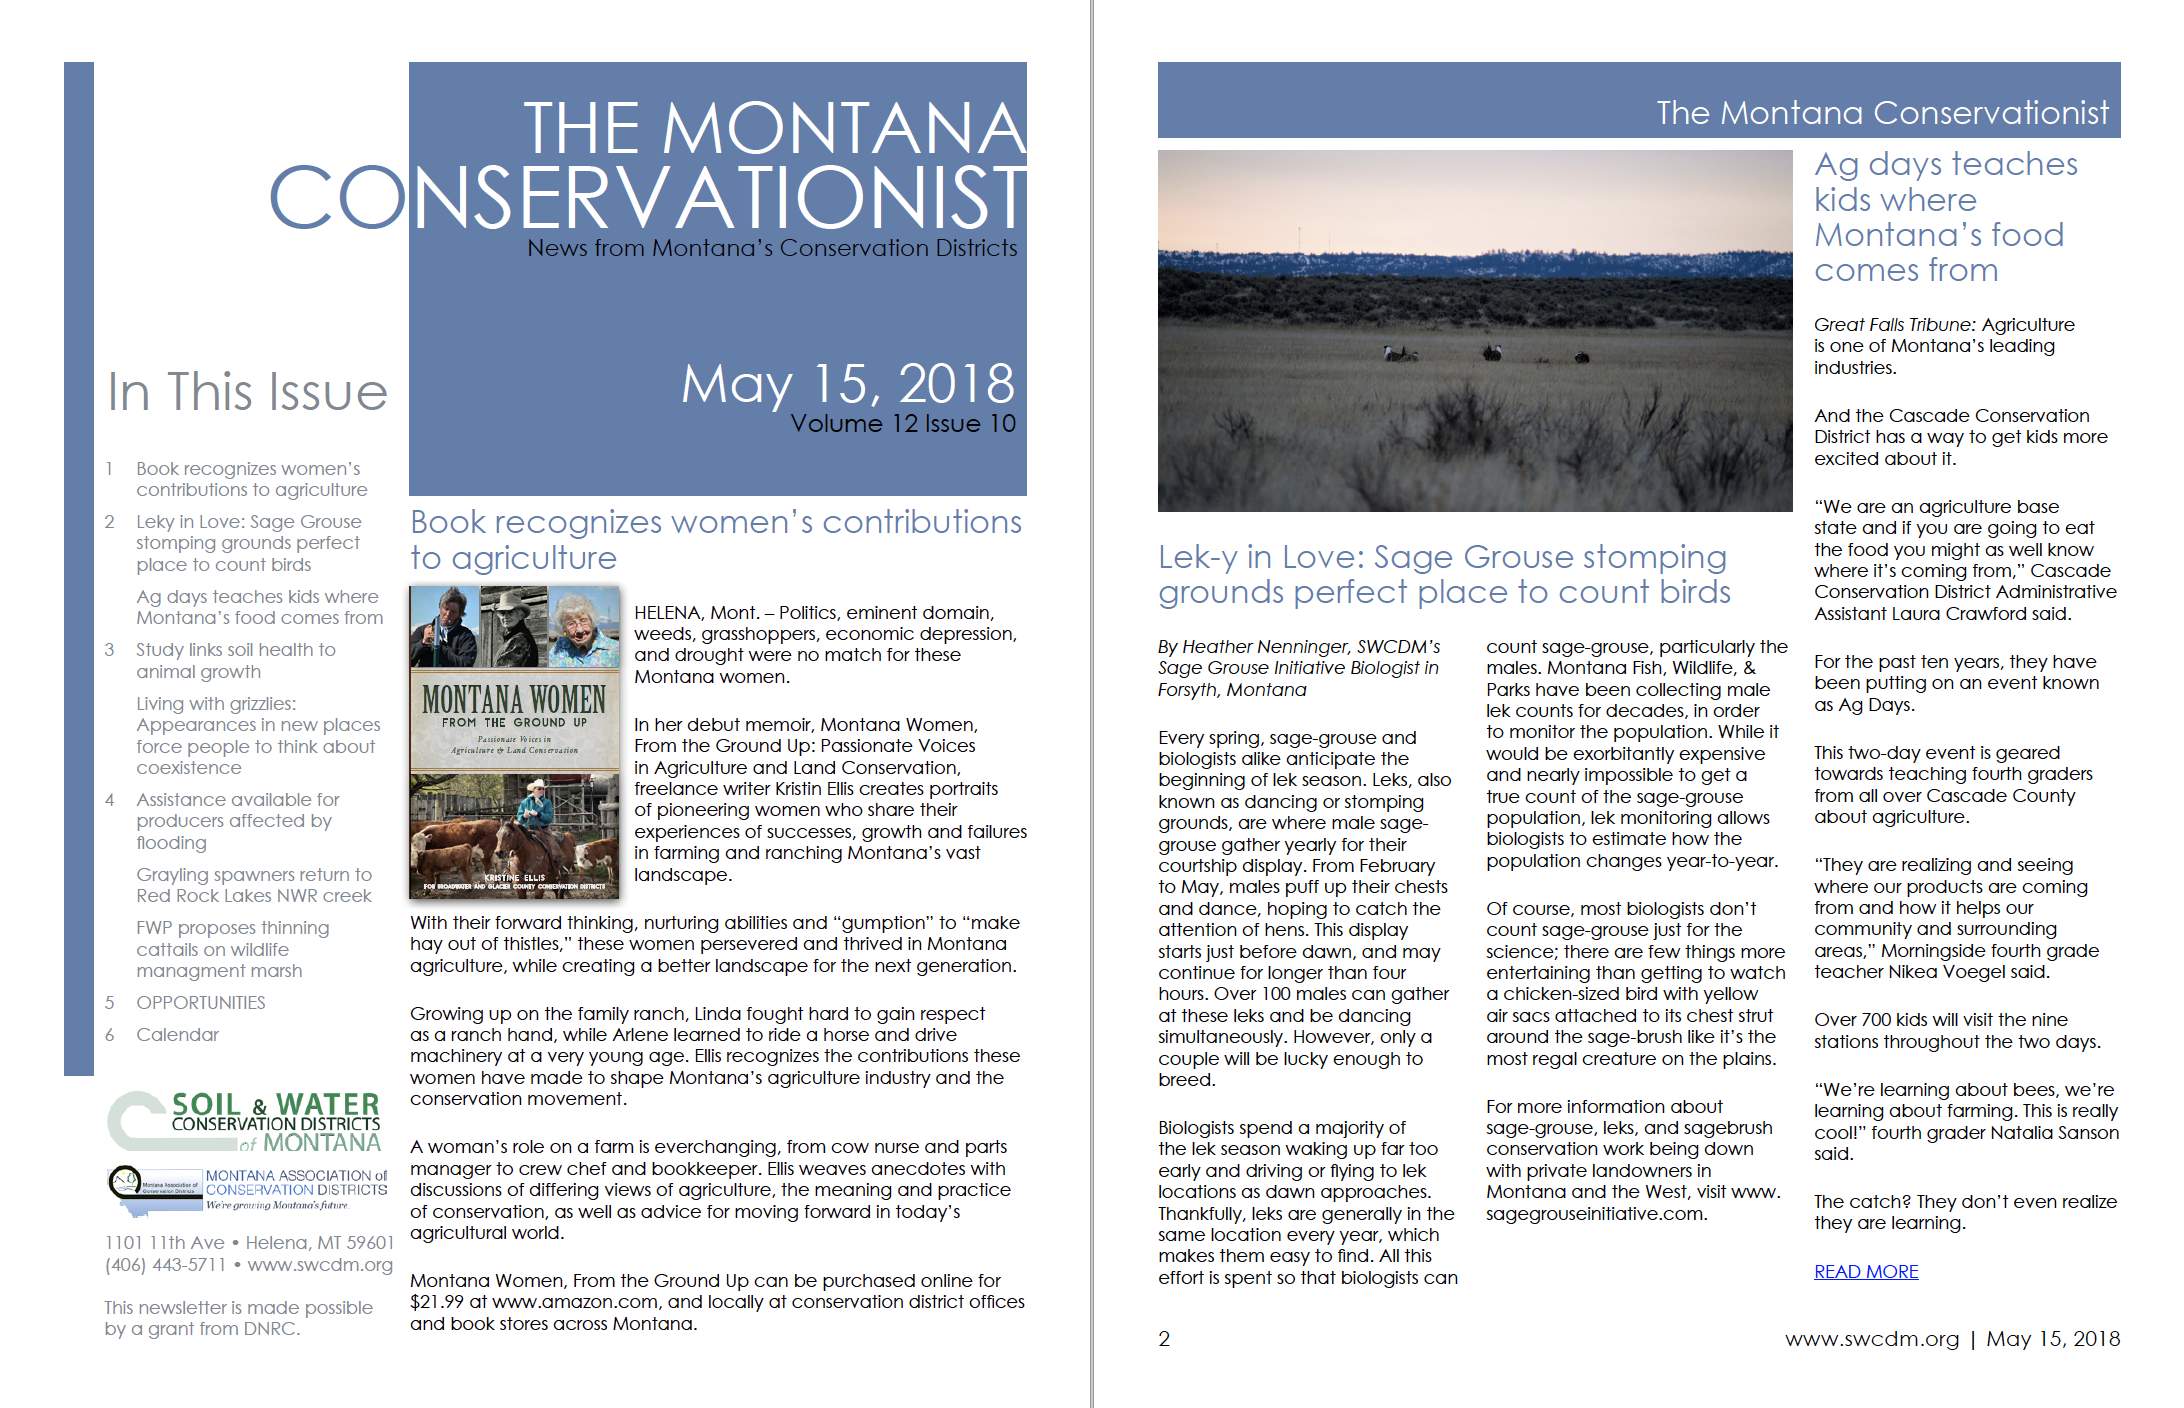 The Montana Conservationist, May 15